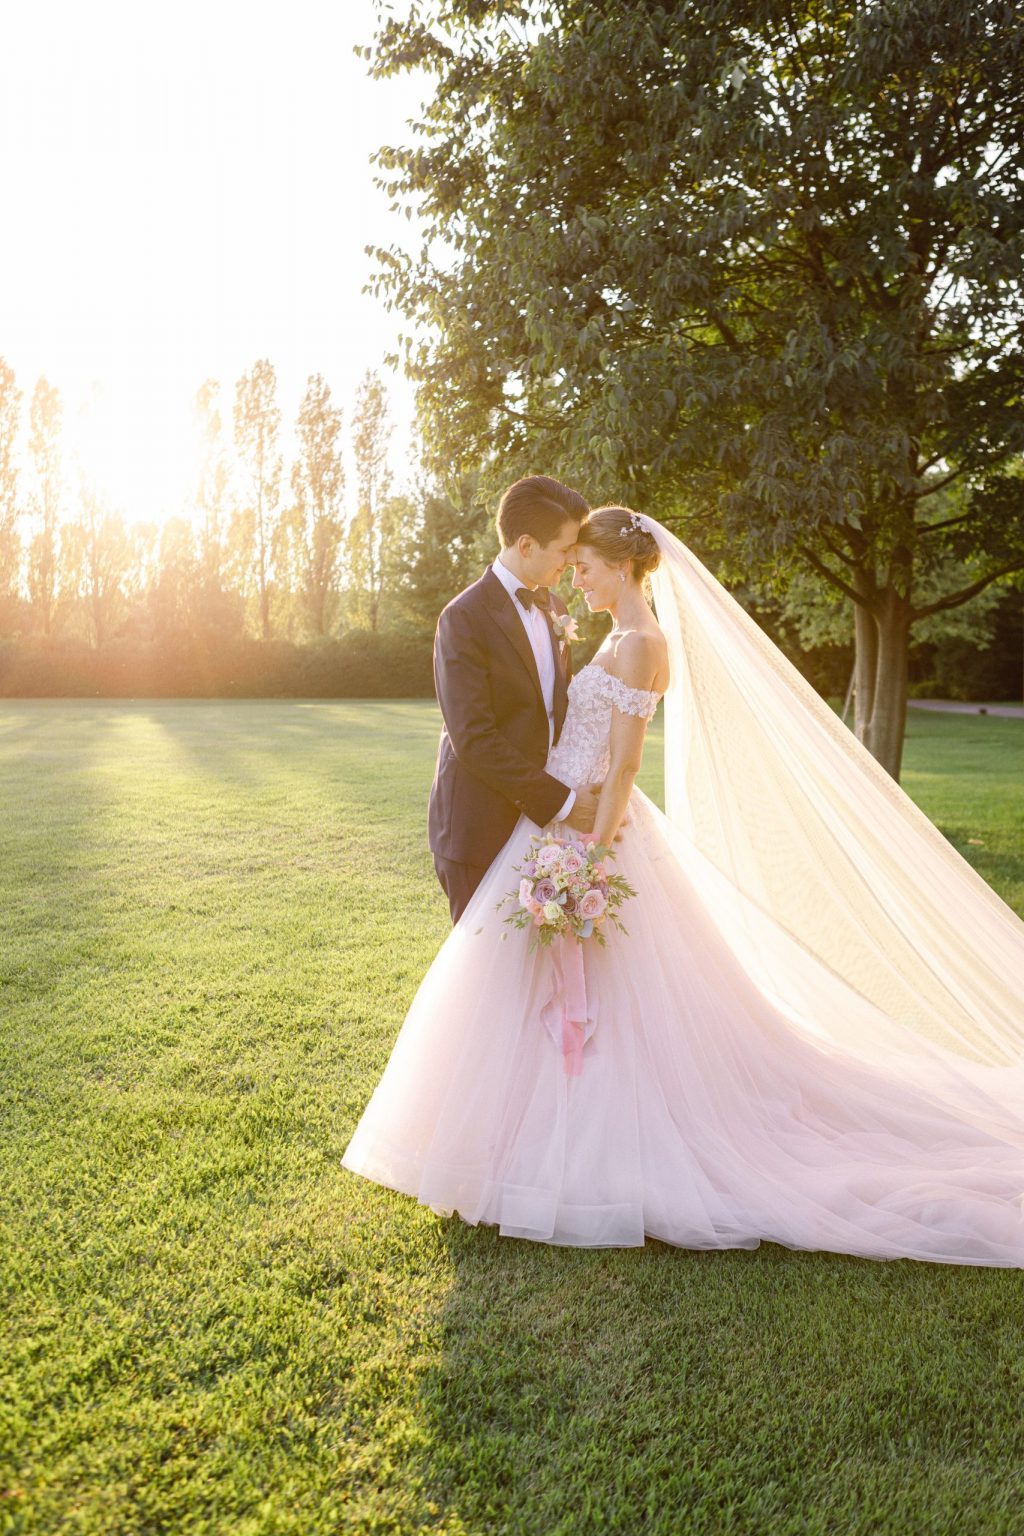 Kiss bride groom Elegant Countryside Wedding in the North of Italy, Treviso Venice